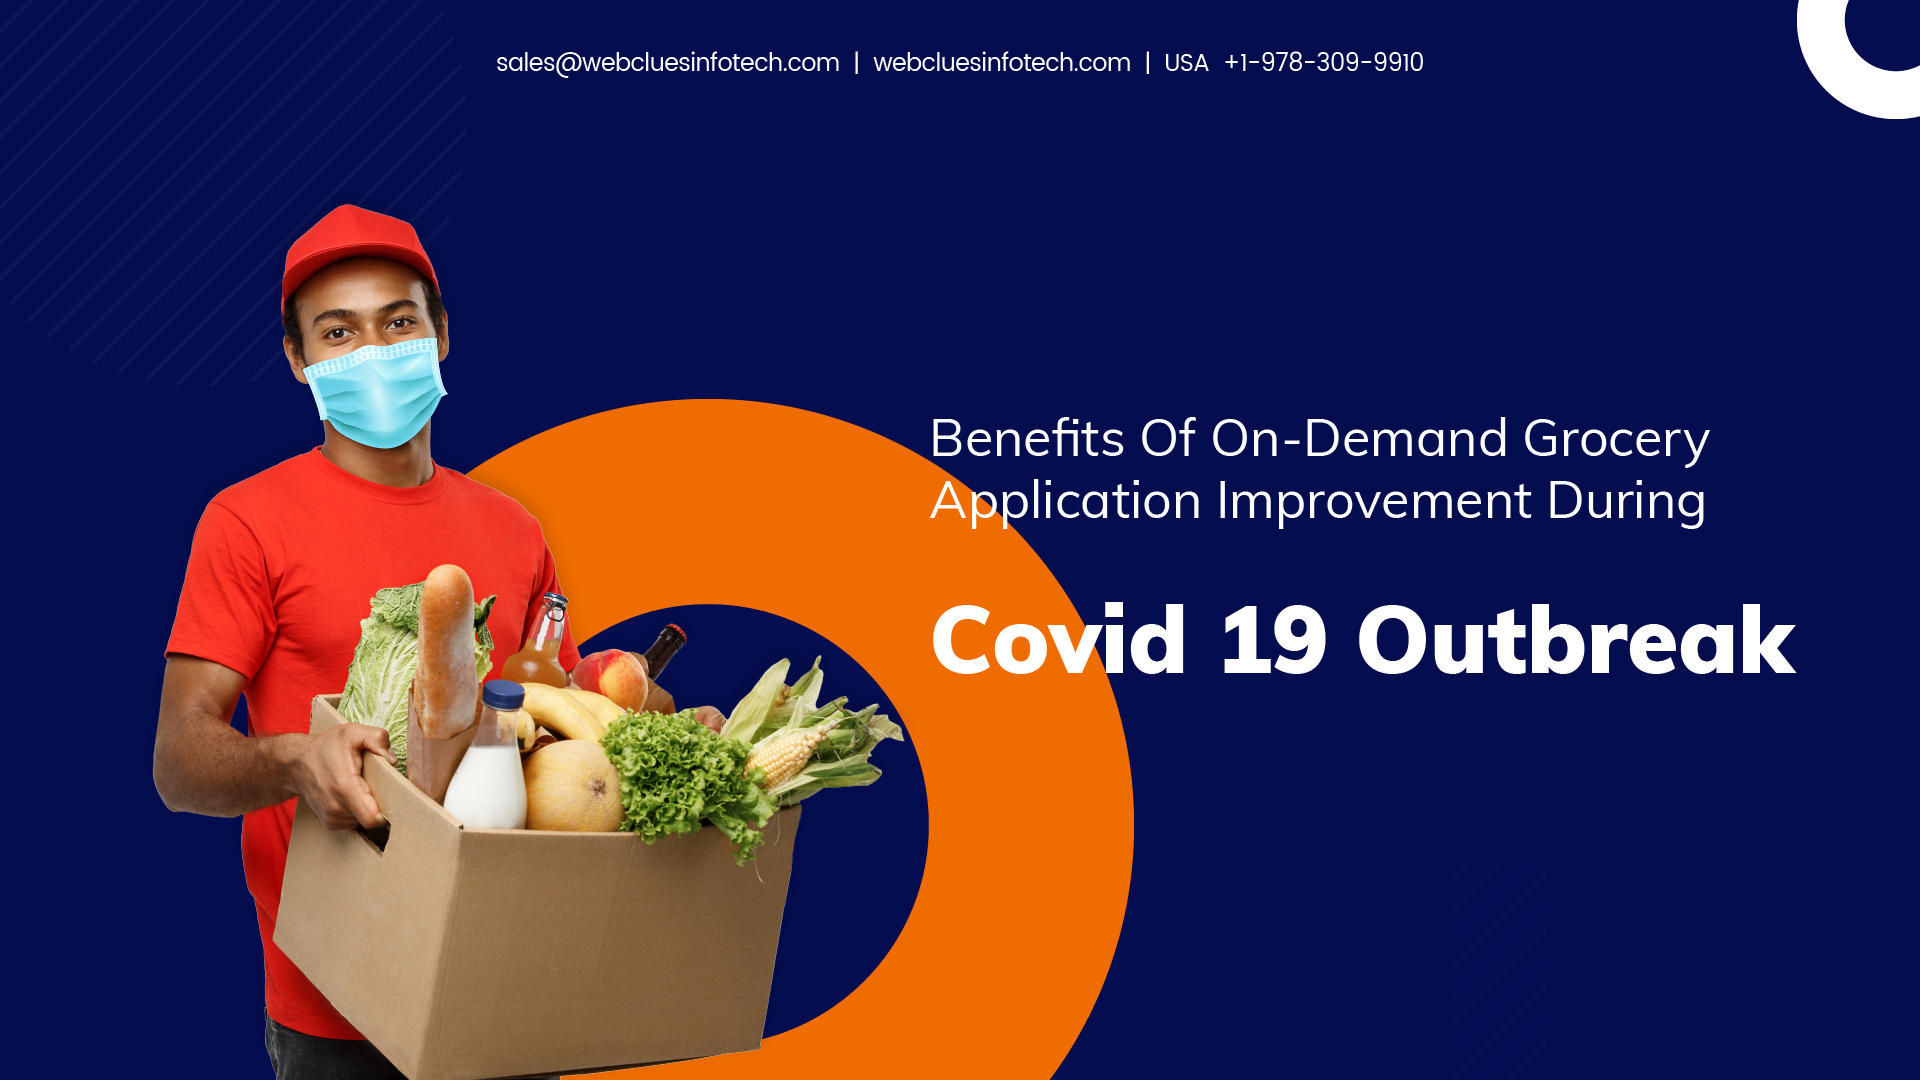 Benefits of On-Demand Grocery App Development During Covid-19 Outbreak | WebClues Infotech